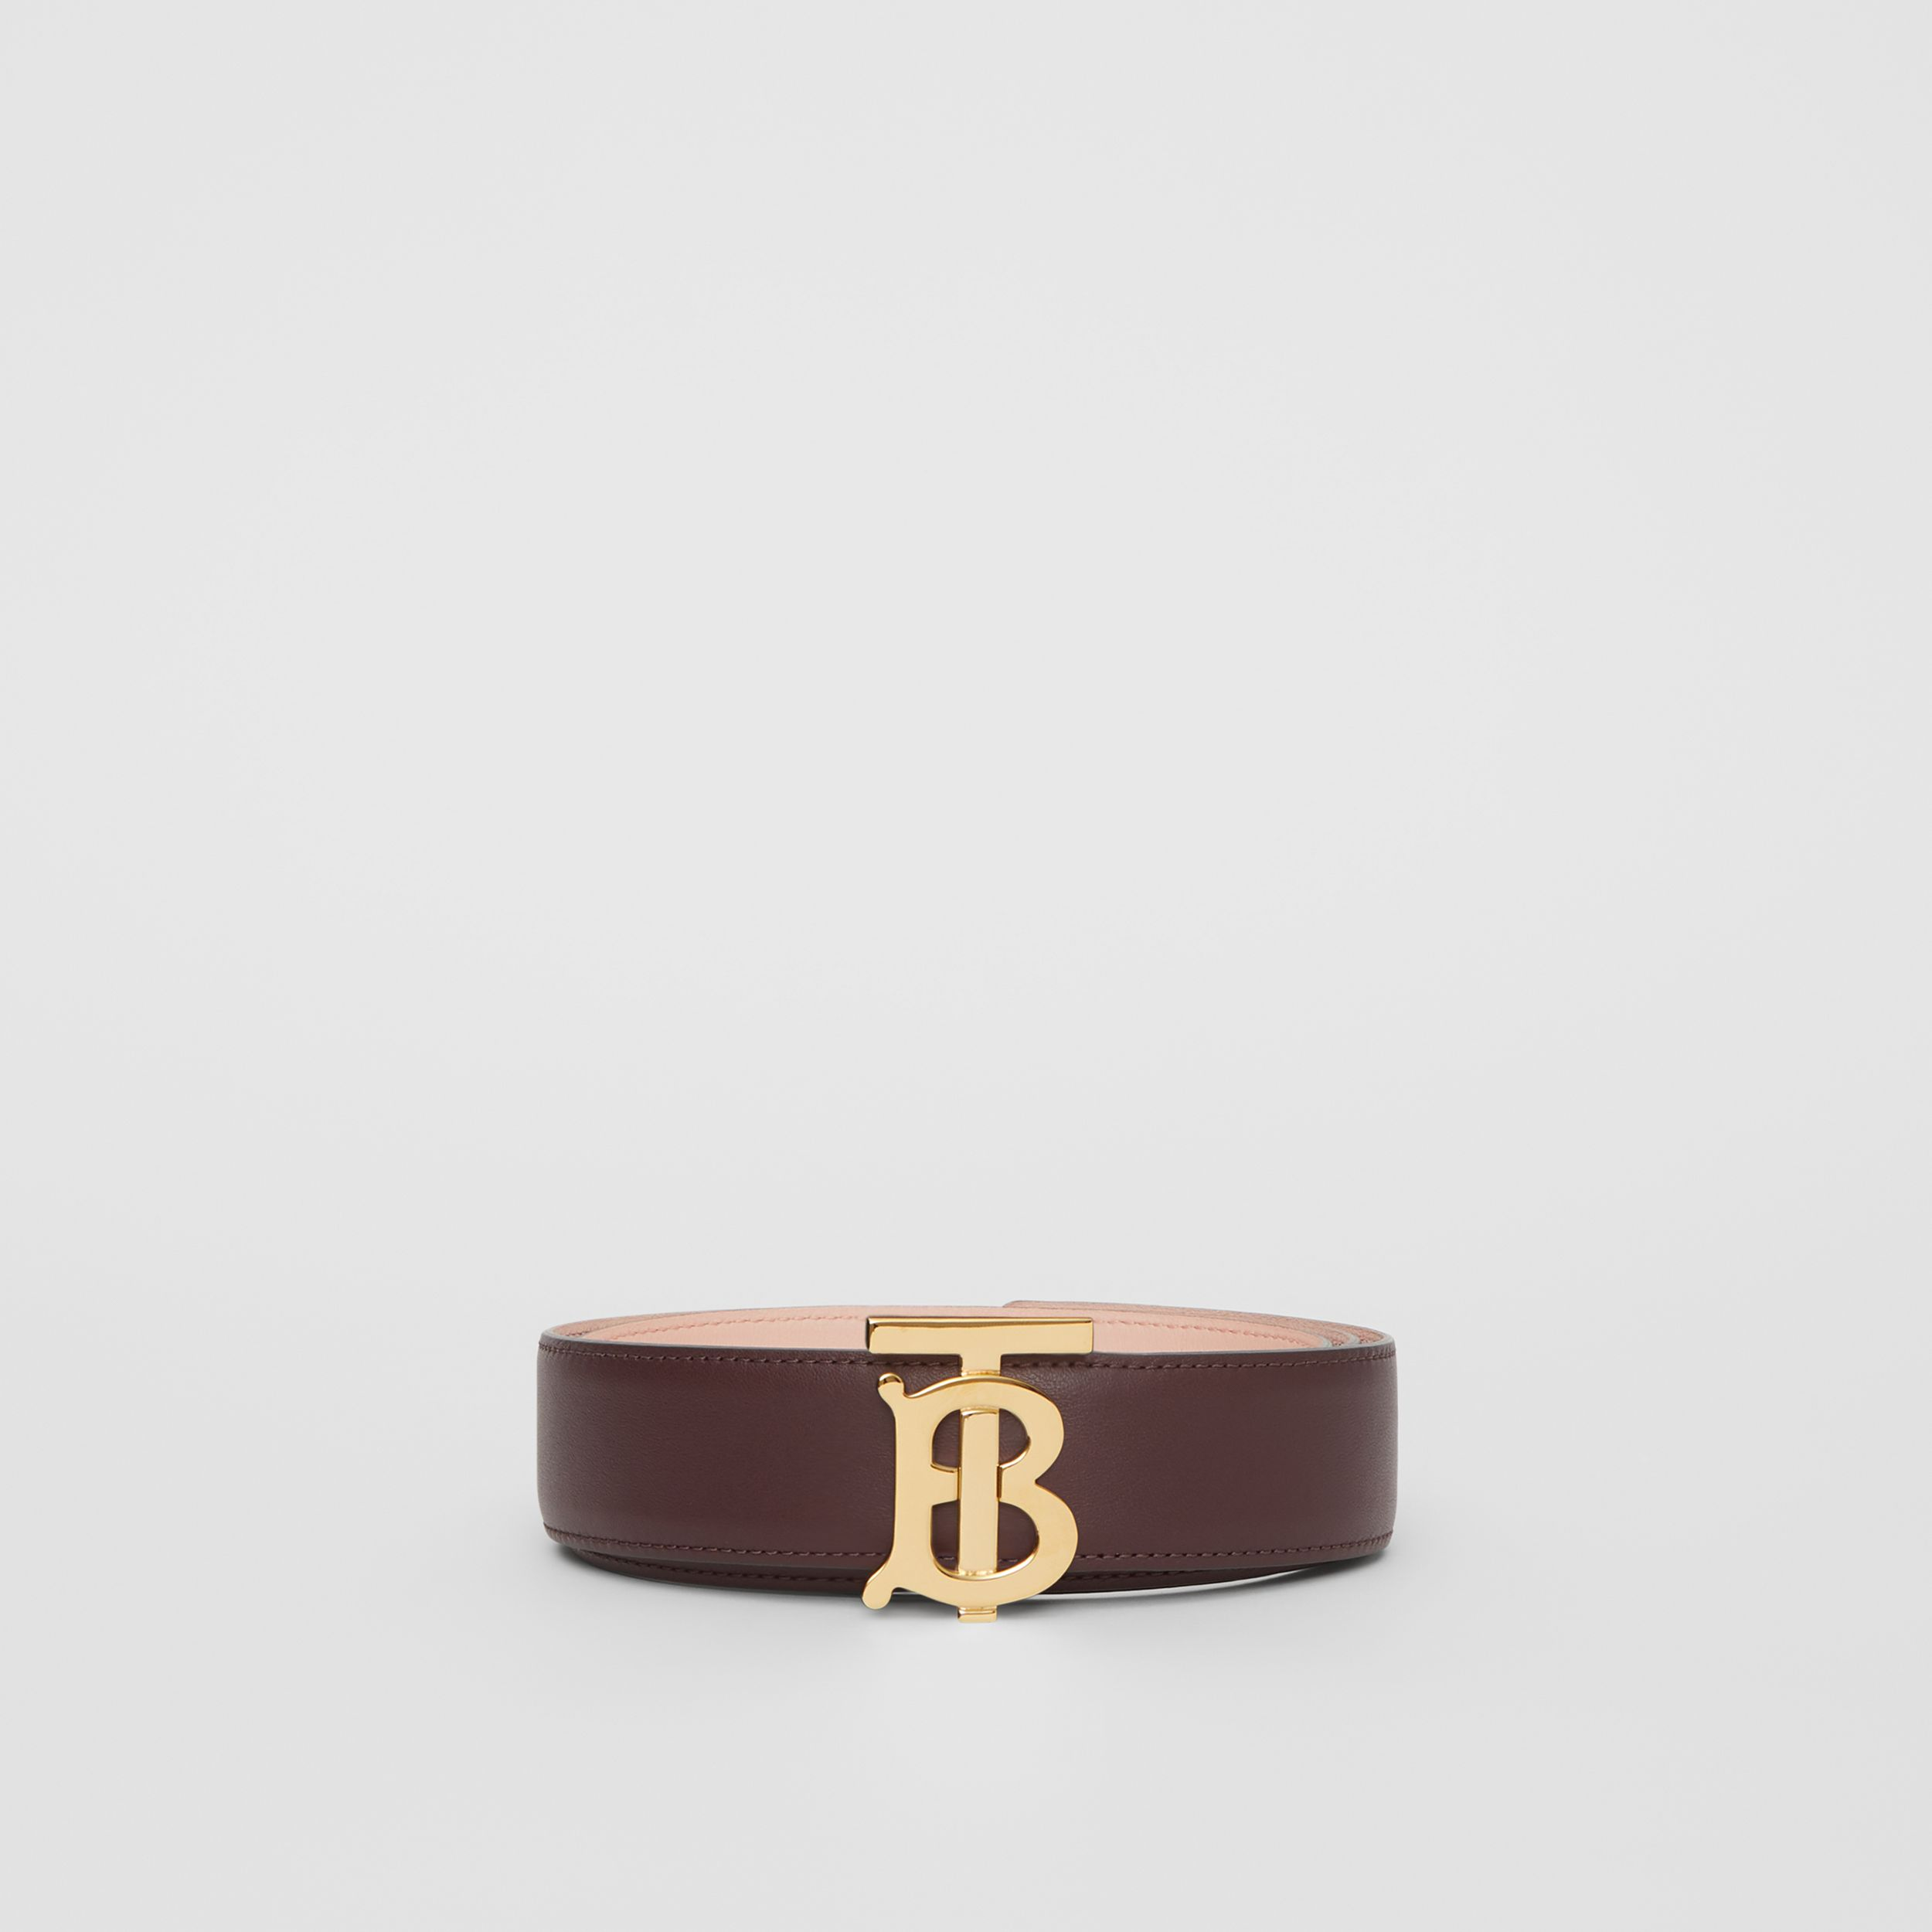 Reversible Monogram Motif Leather Belt in Oxblood/rose Beige - Women | Burberry - 4